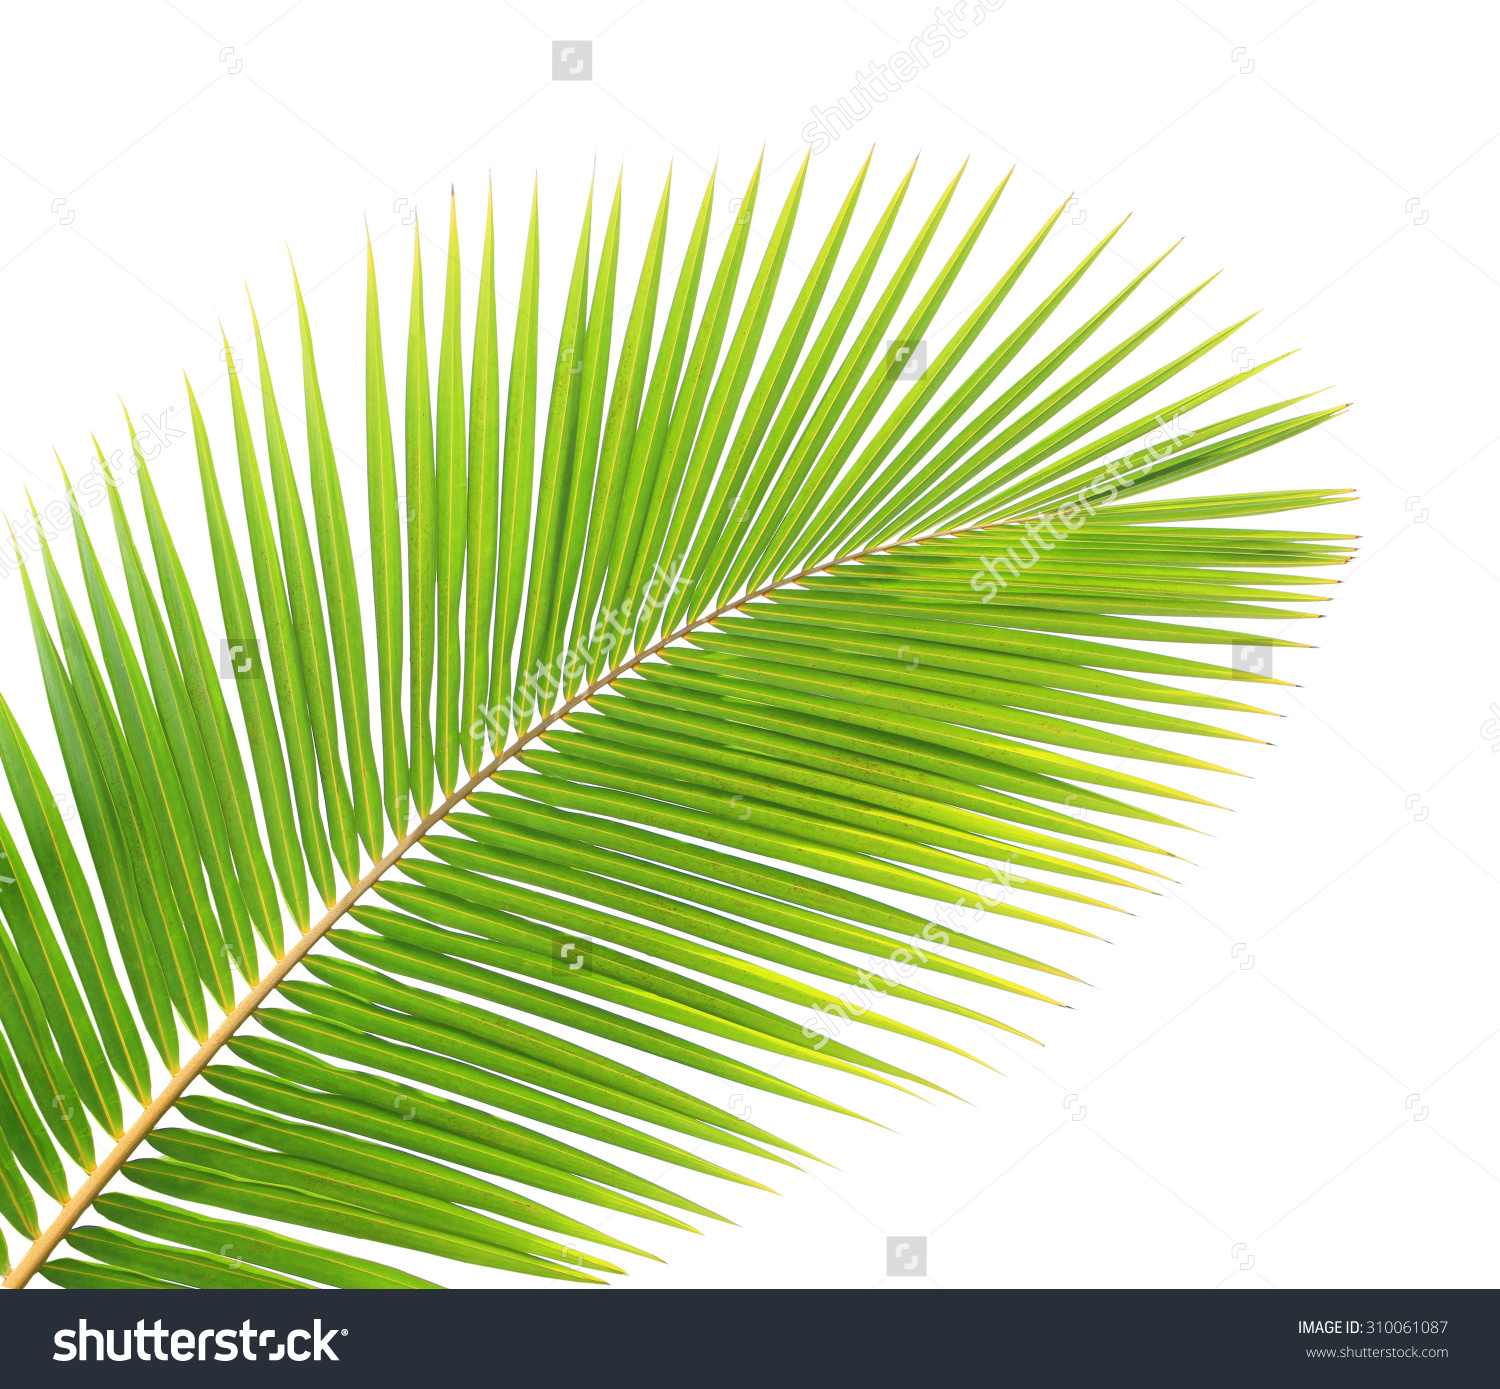 Coconut leaves clipart - Clipground Almond Tree Clipart